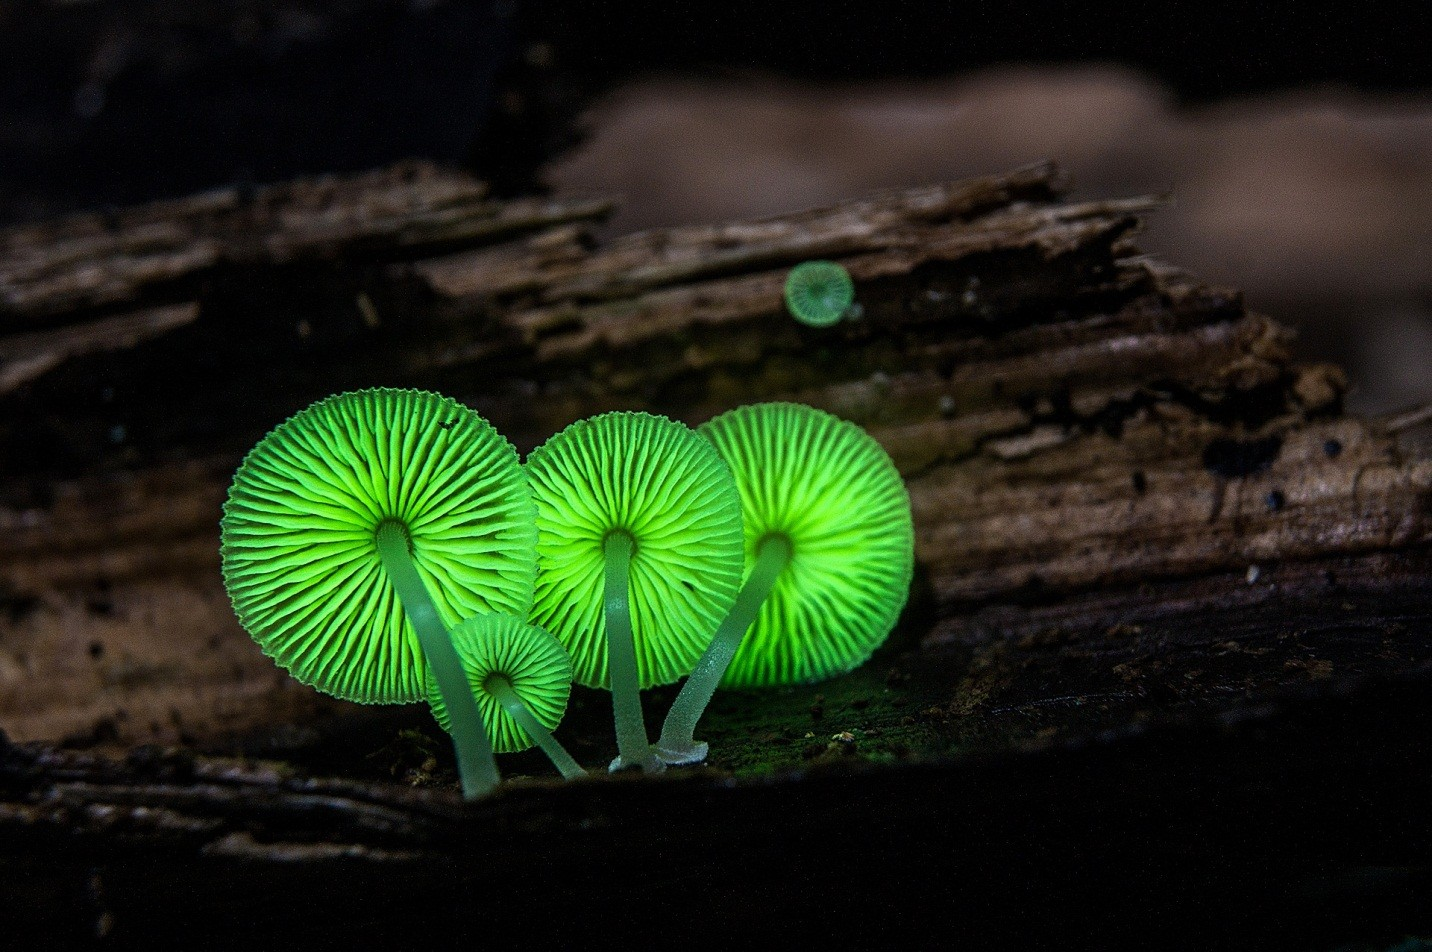 Photography: What Make These Mushrooms Stunning?